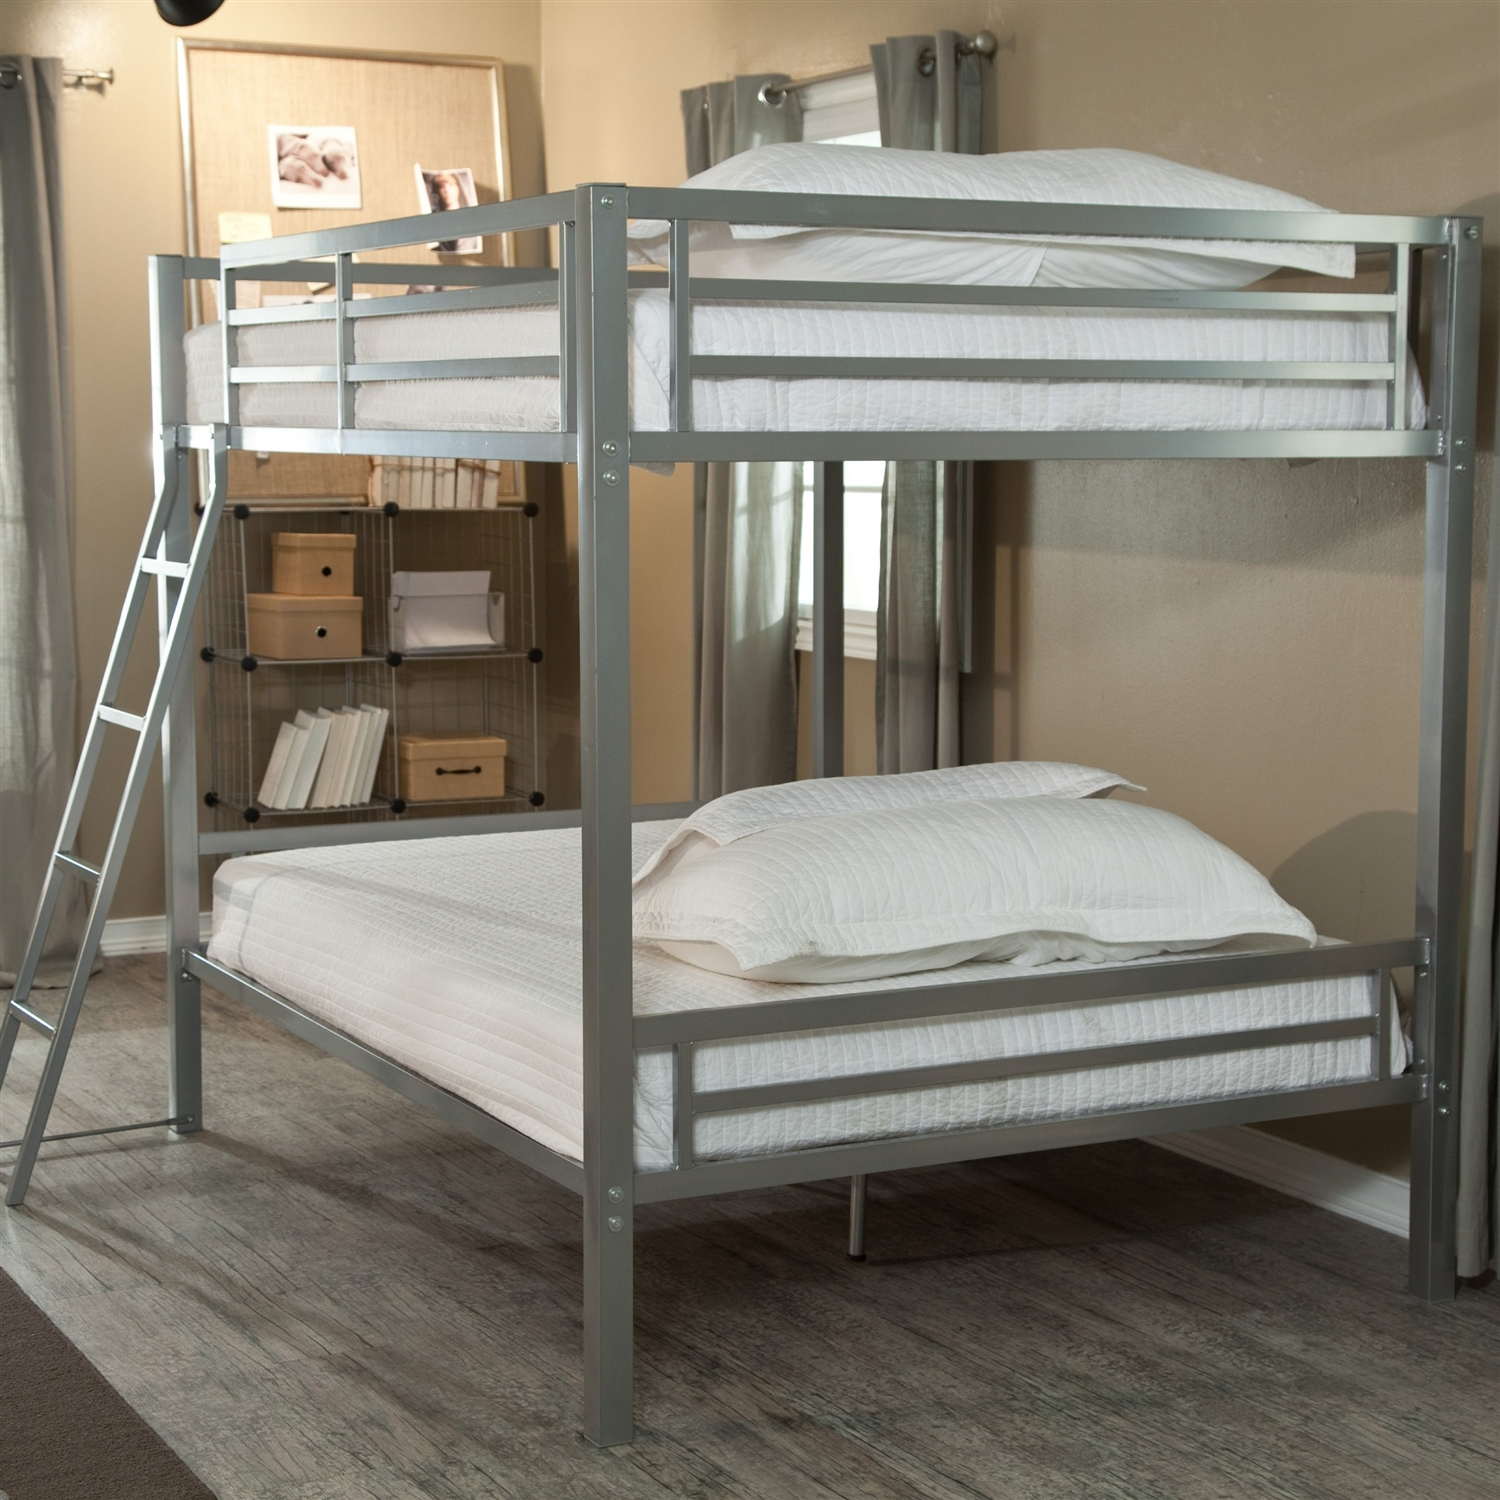 Full Over Full Size Bunk Bed With Ladder In Silver Metal